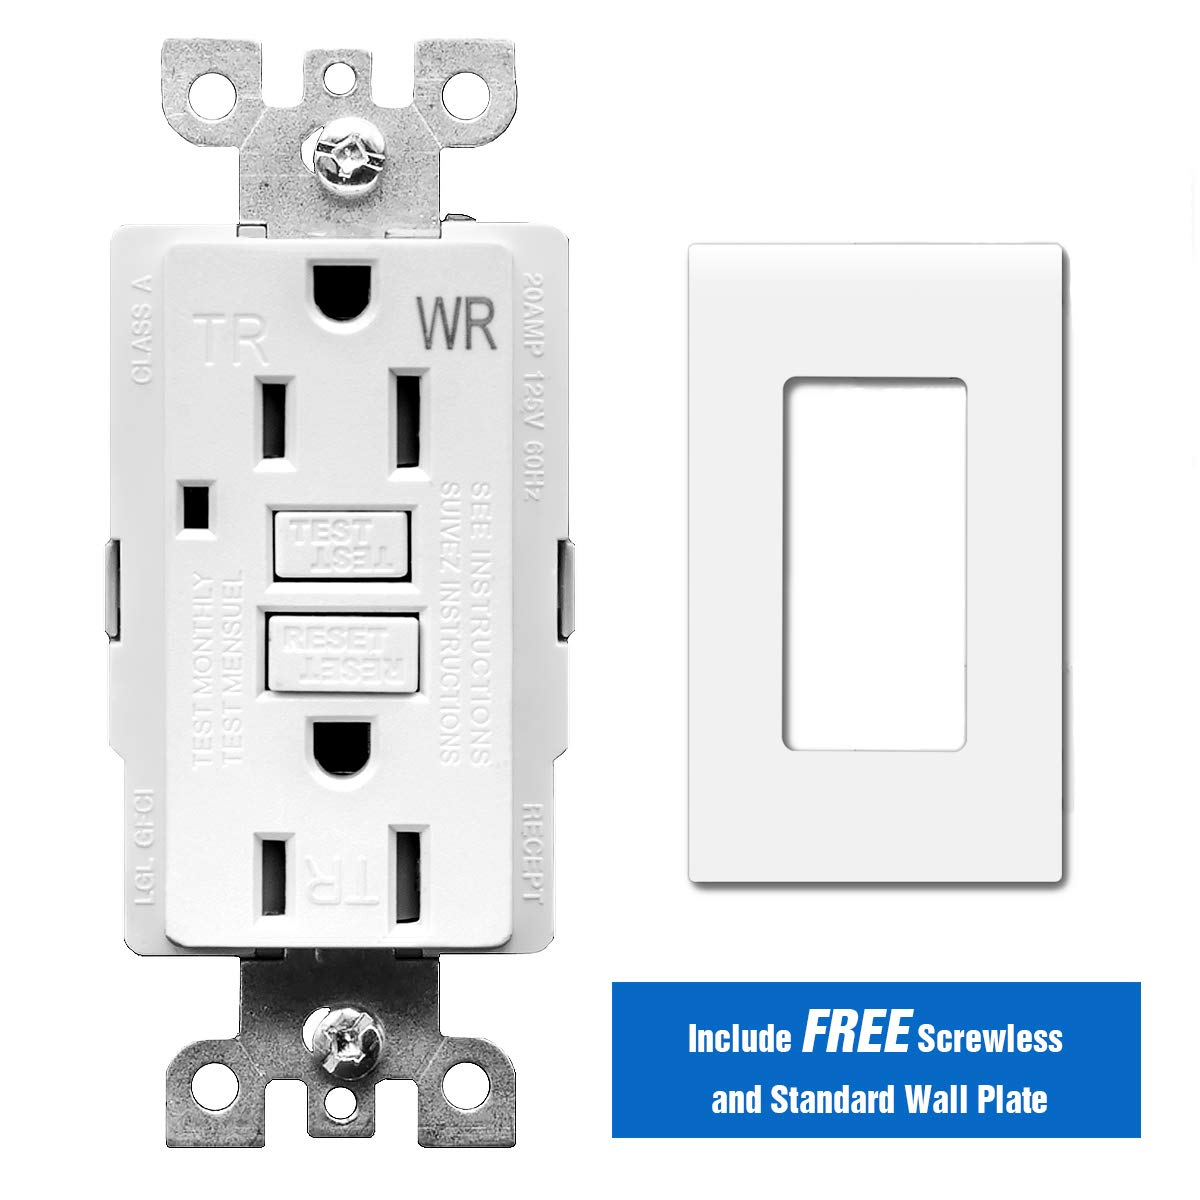 Topele 15 Amp Gfci Outlet Ground Fault Circuit Interrupter Outlets 20 Breaker What Should Be Used A Or Is Our Policy